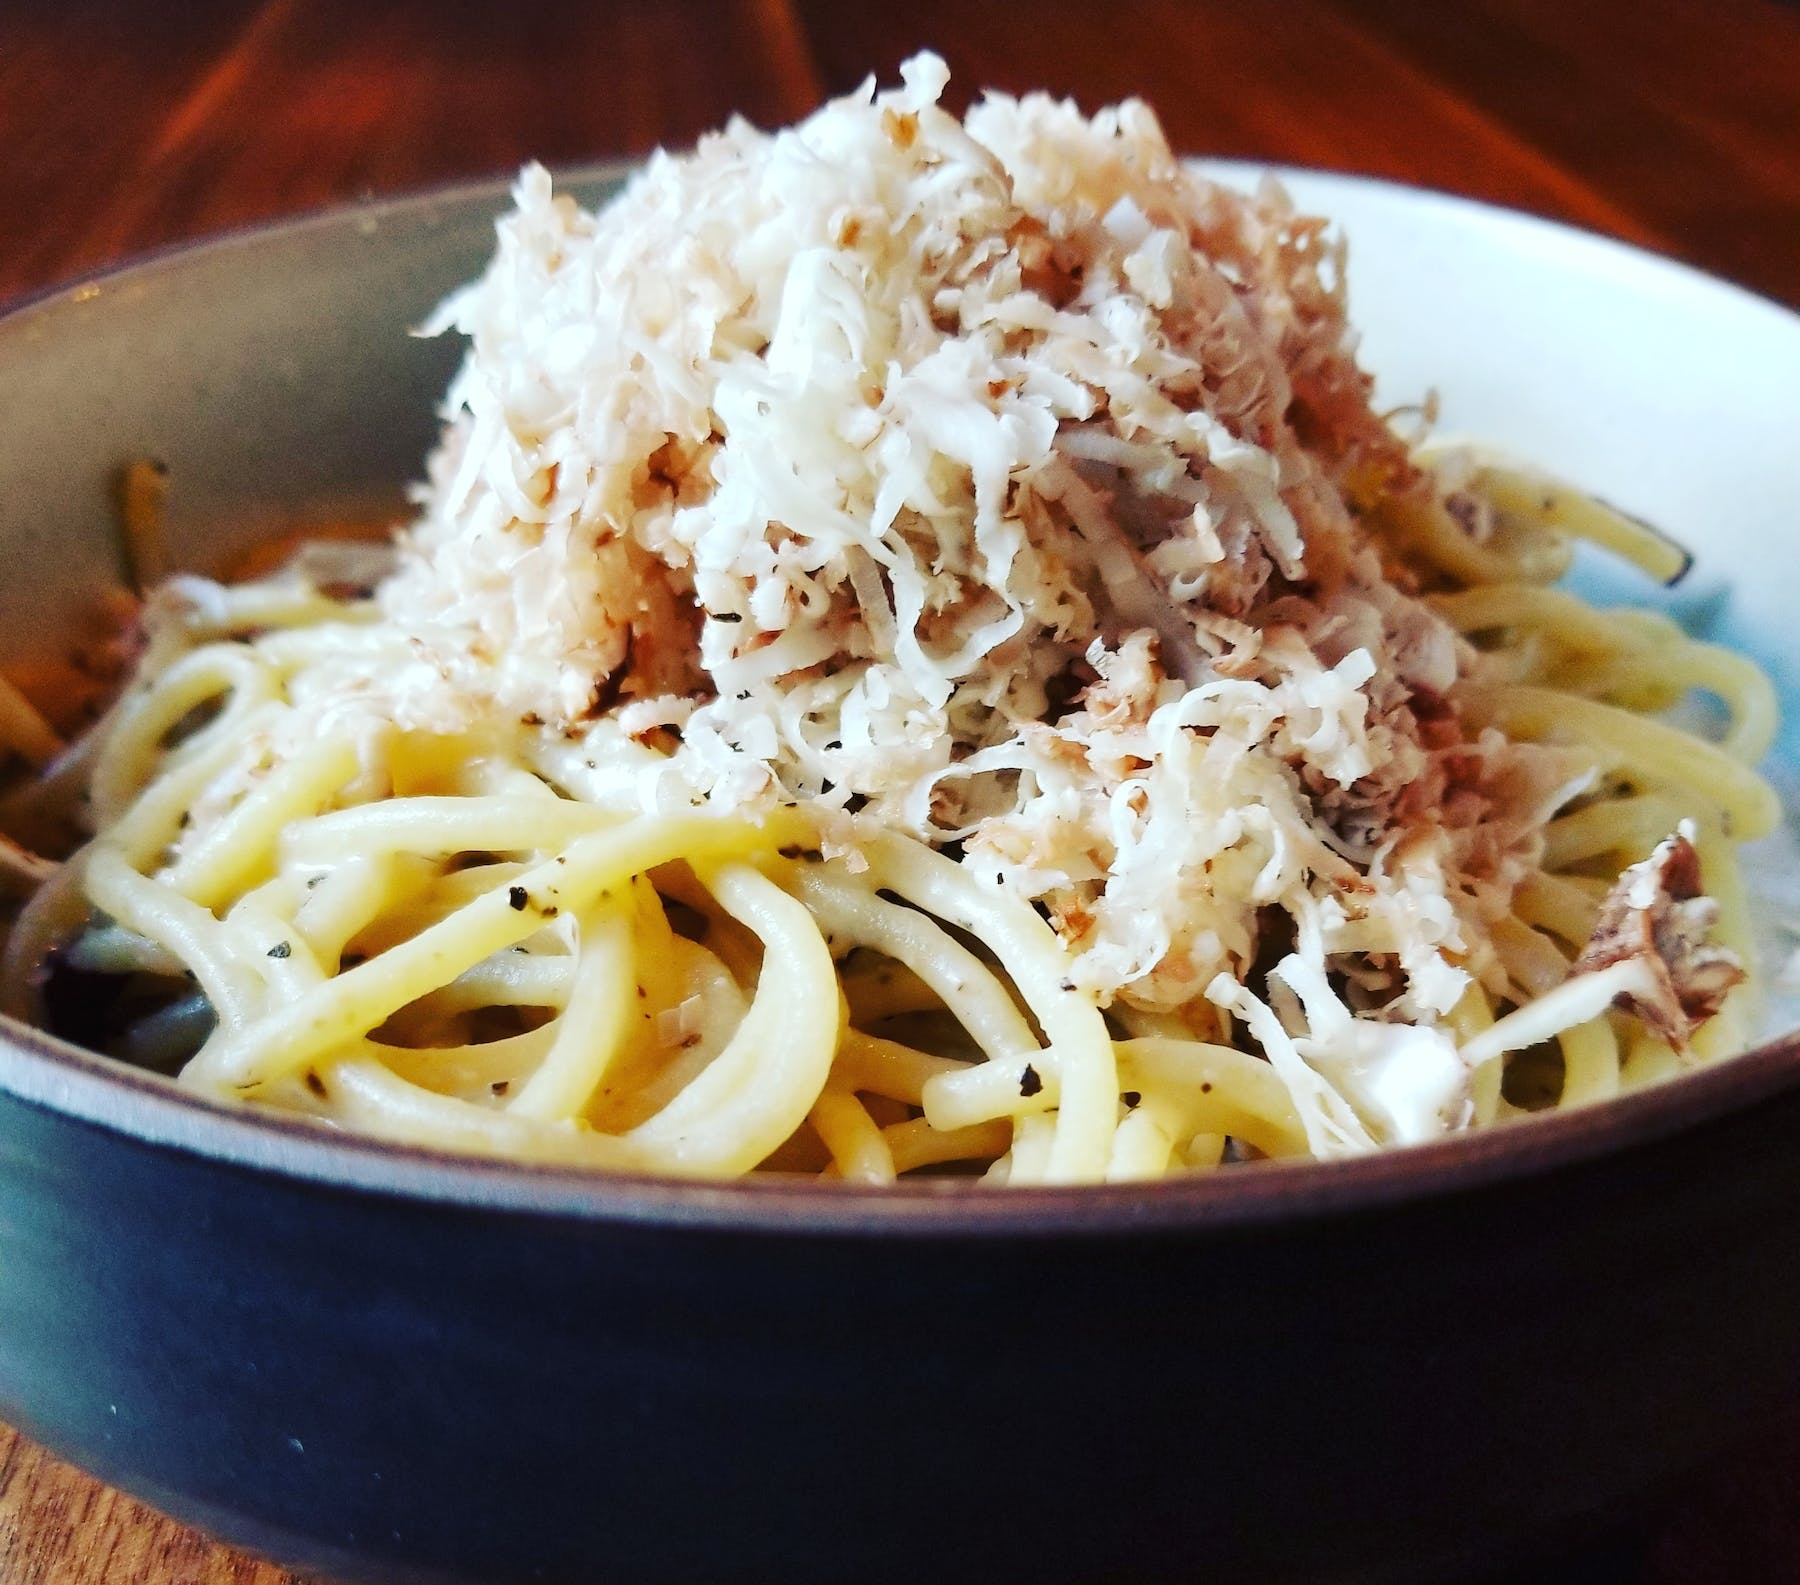 a bowl of pasta sits on a plate